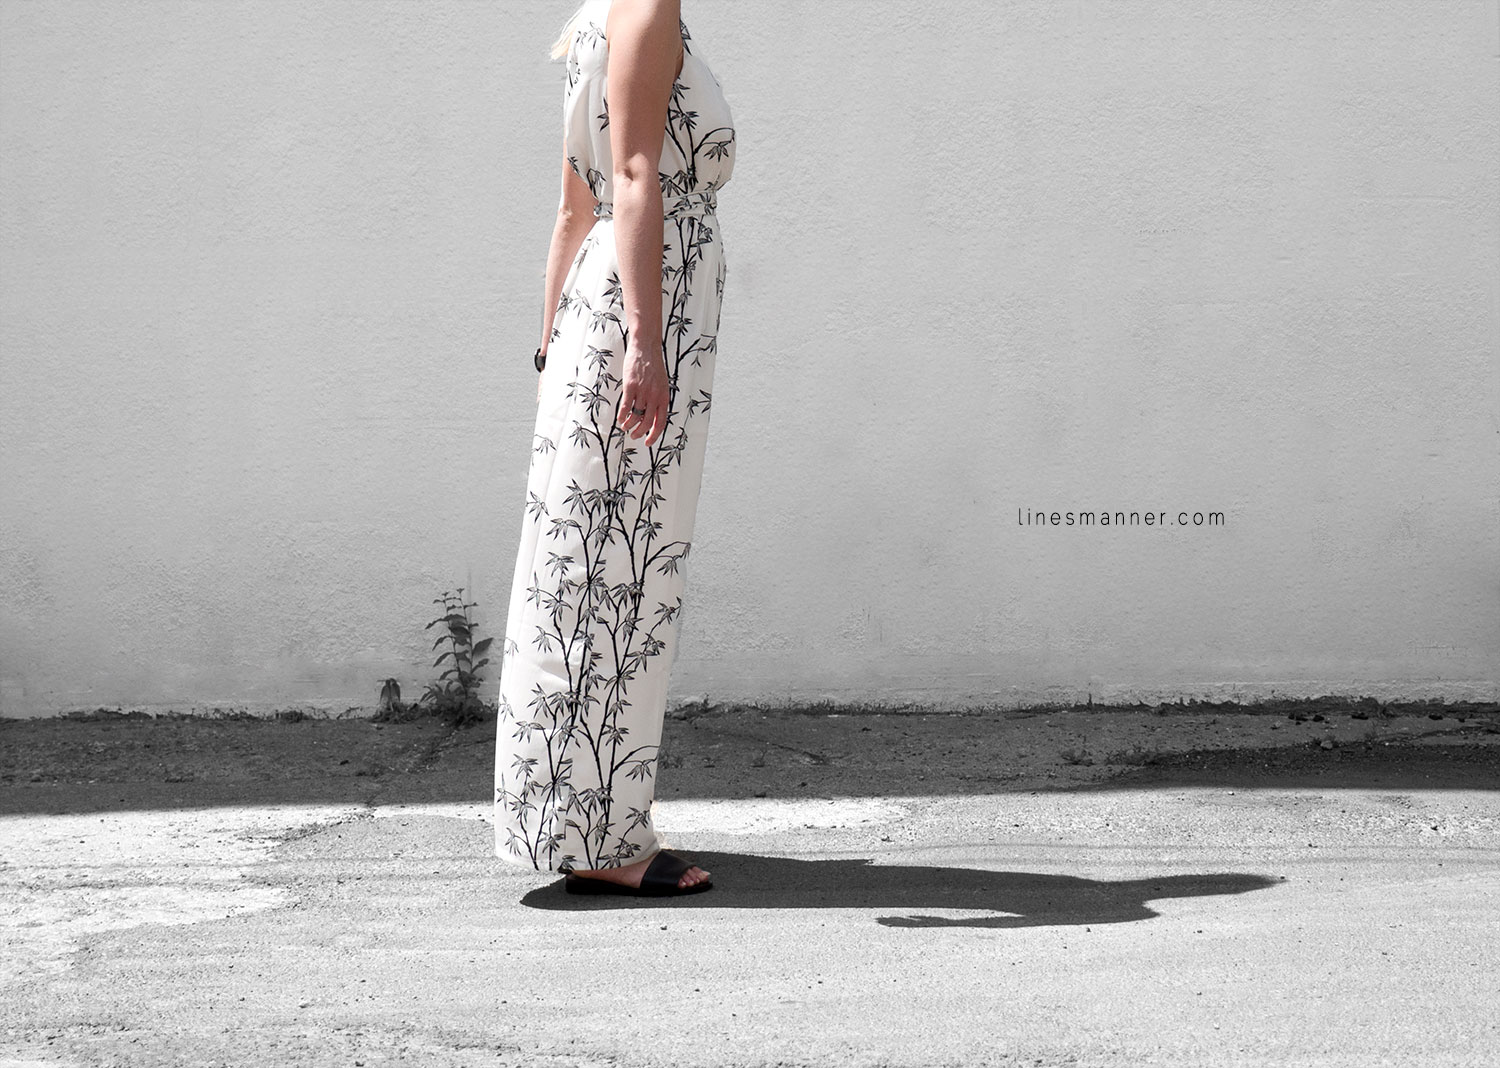 Lines-Manner-Minimal-Simplicity-Essentials-Bon_Label-Neon_Rose_Print-Bamboo-Slit_Dress-Wrap_Dress-Maxi_Dress-Fesh-Black_and_White-Casual-Elegant-Bright-Monochrome-17